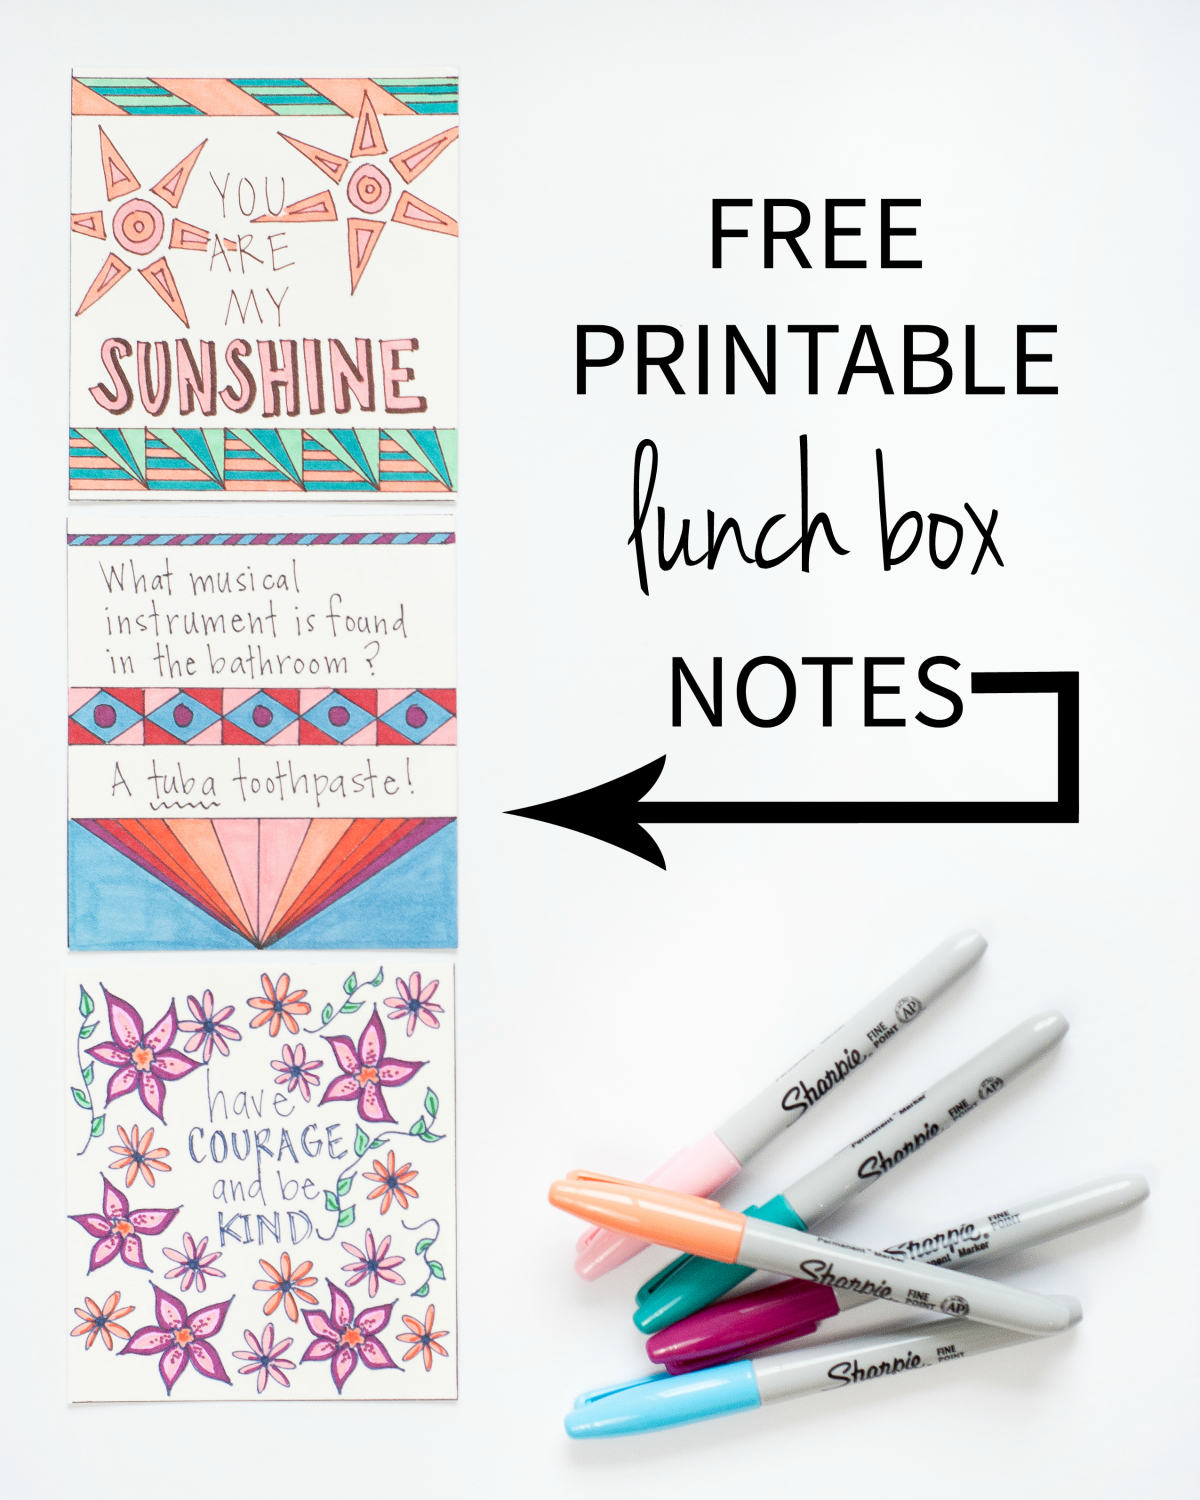 Free printable lunch notes that you can color in yourself. The jokes would be great for kids to color and include in party favor bags too!